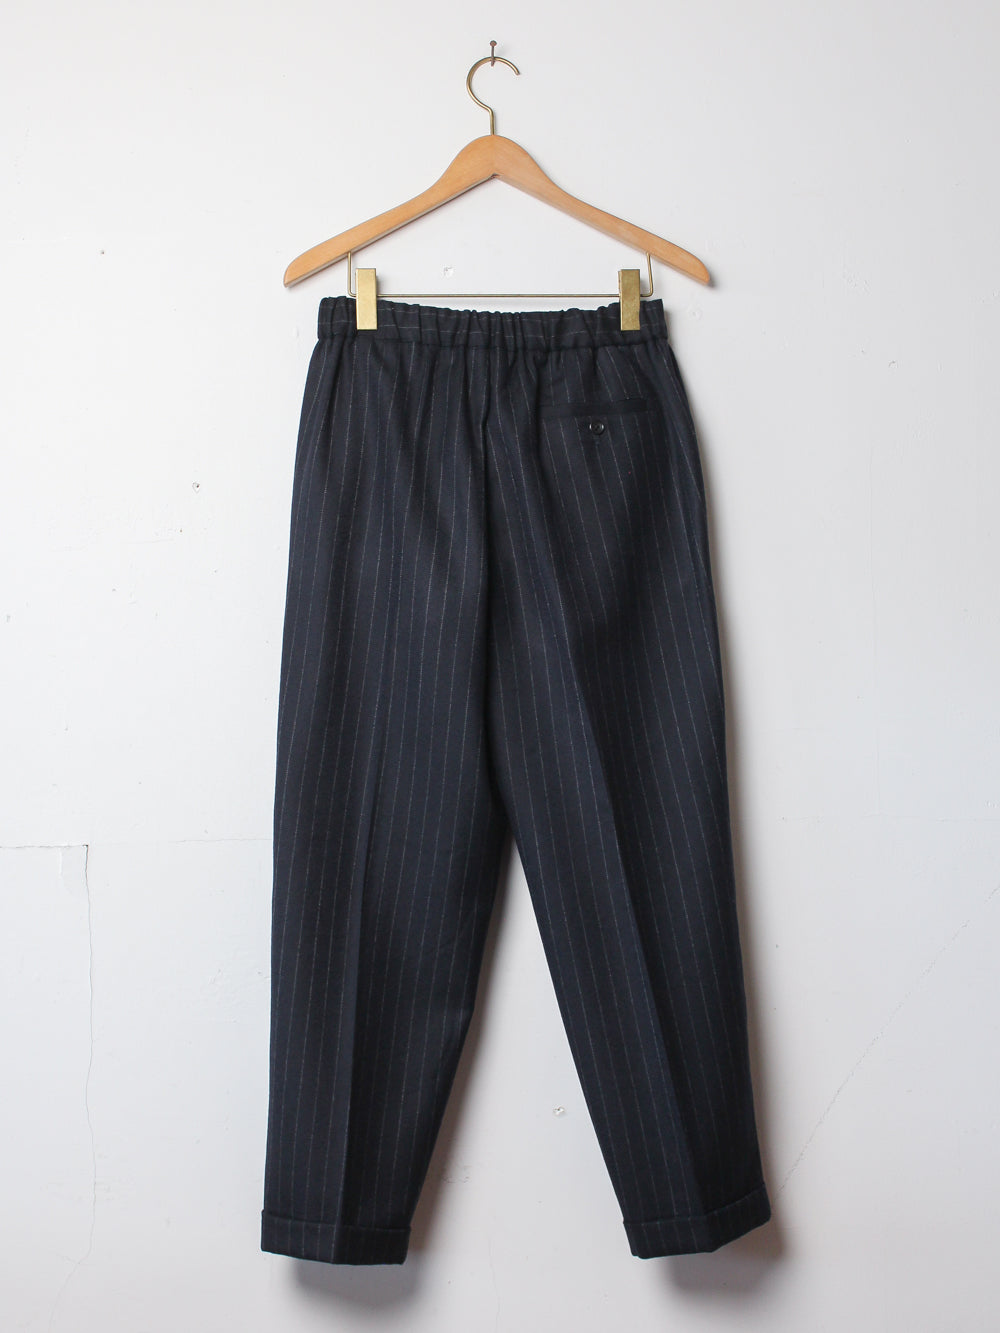 nico hope pant in navy stripe